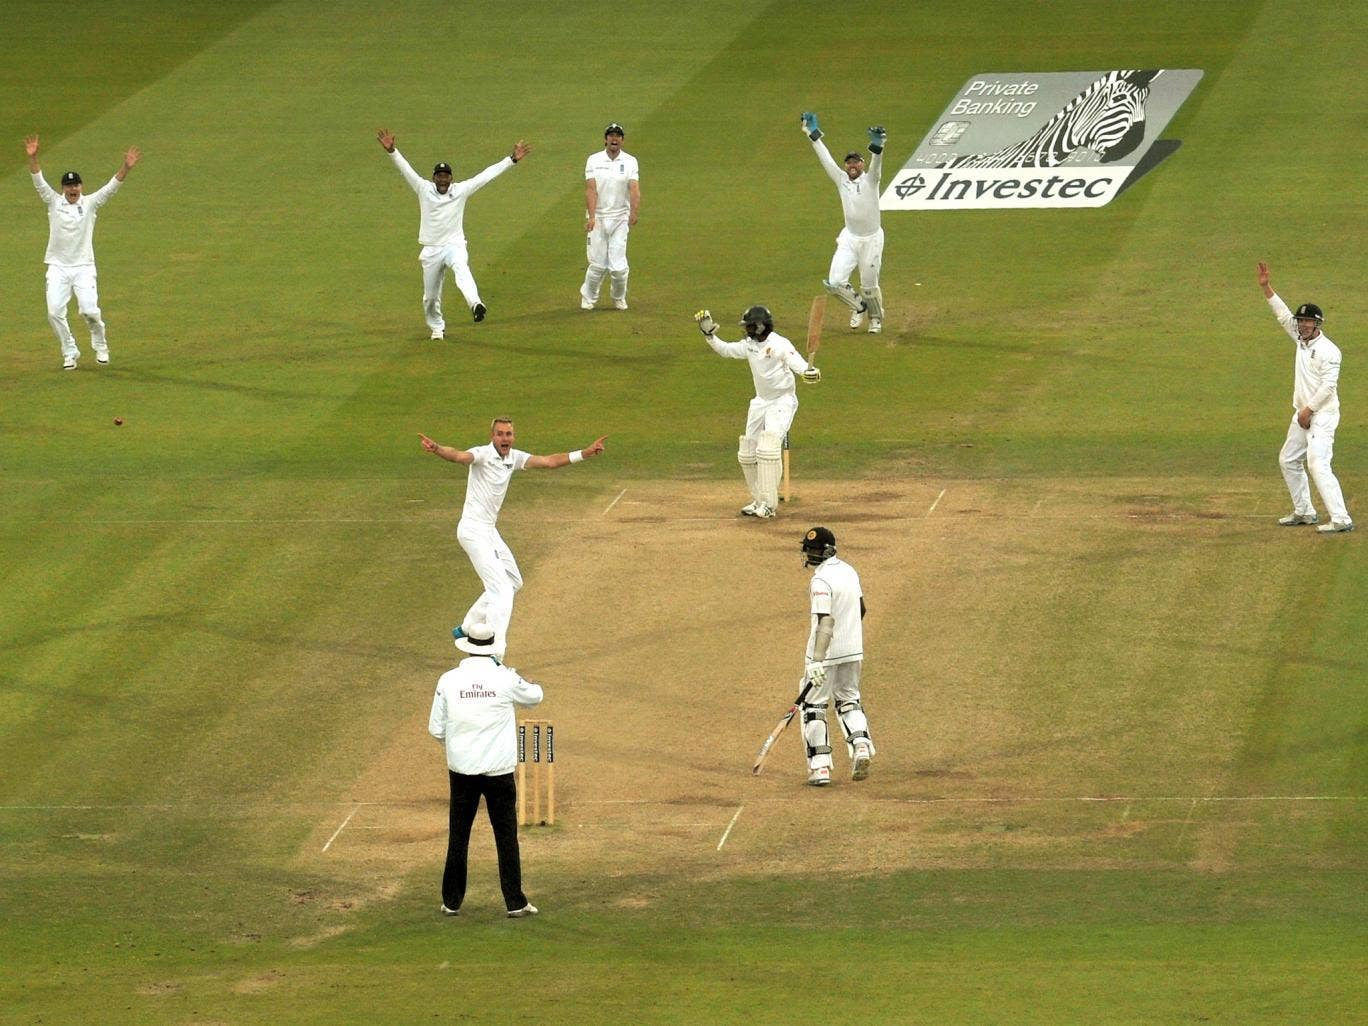 England players, led by paceman Stuart Broad, go up as one to appeal for the decisive wicket of Nuwan Pradeep at Lord's. But celebrations were cut short when the decision was quickly overturned by DRS